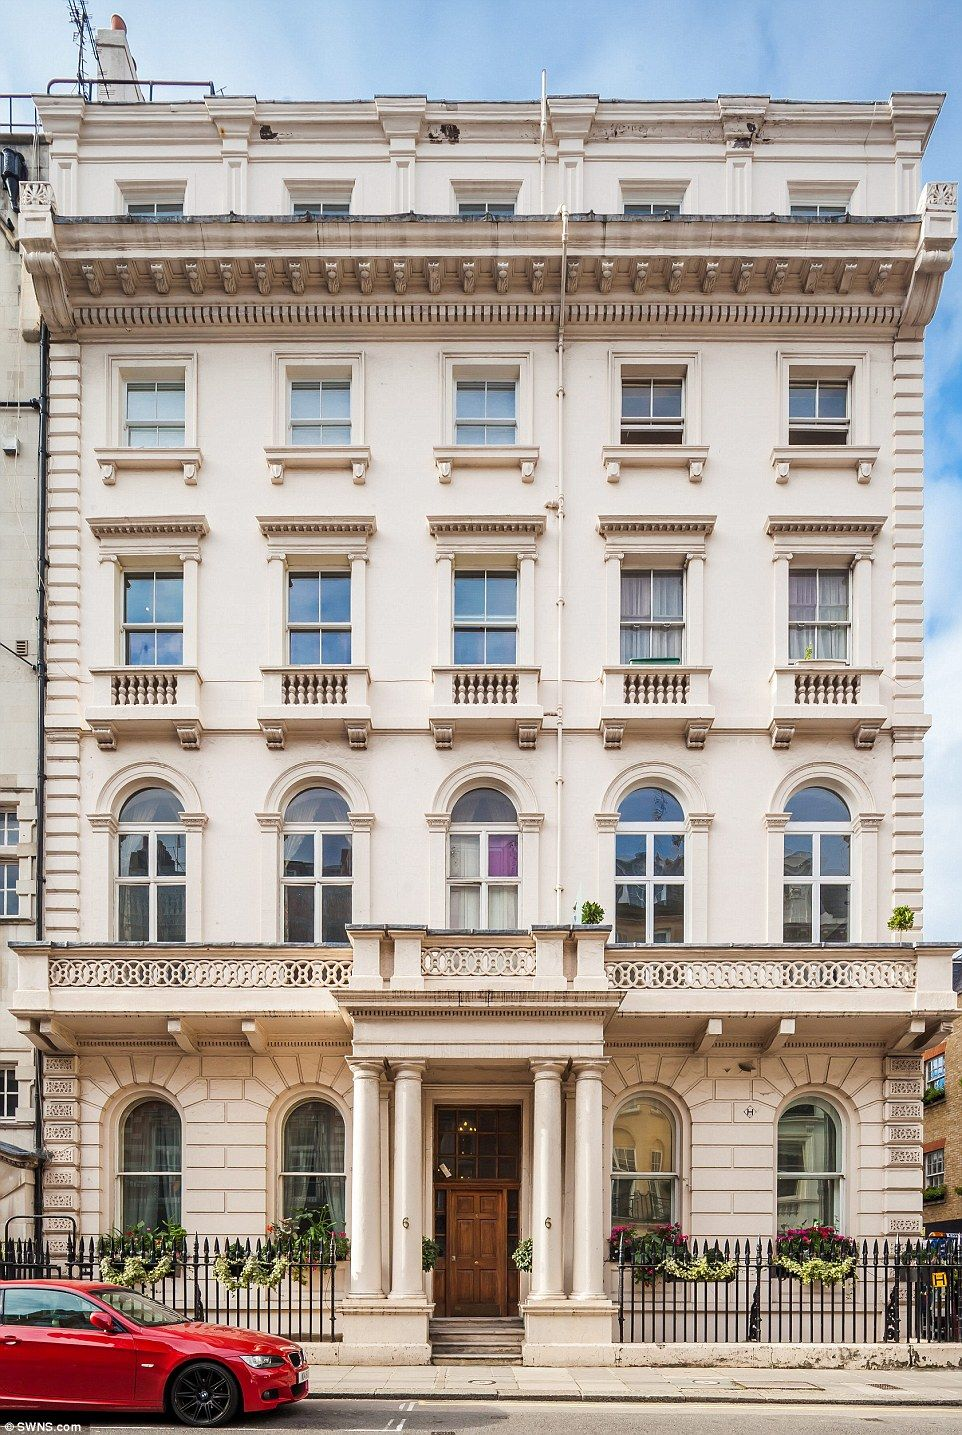 Onebed Mayfair flat on sale for £1.25million Building